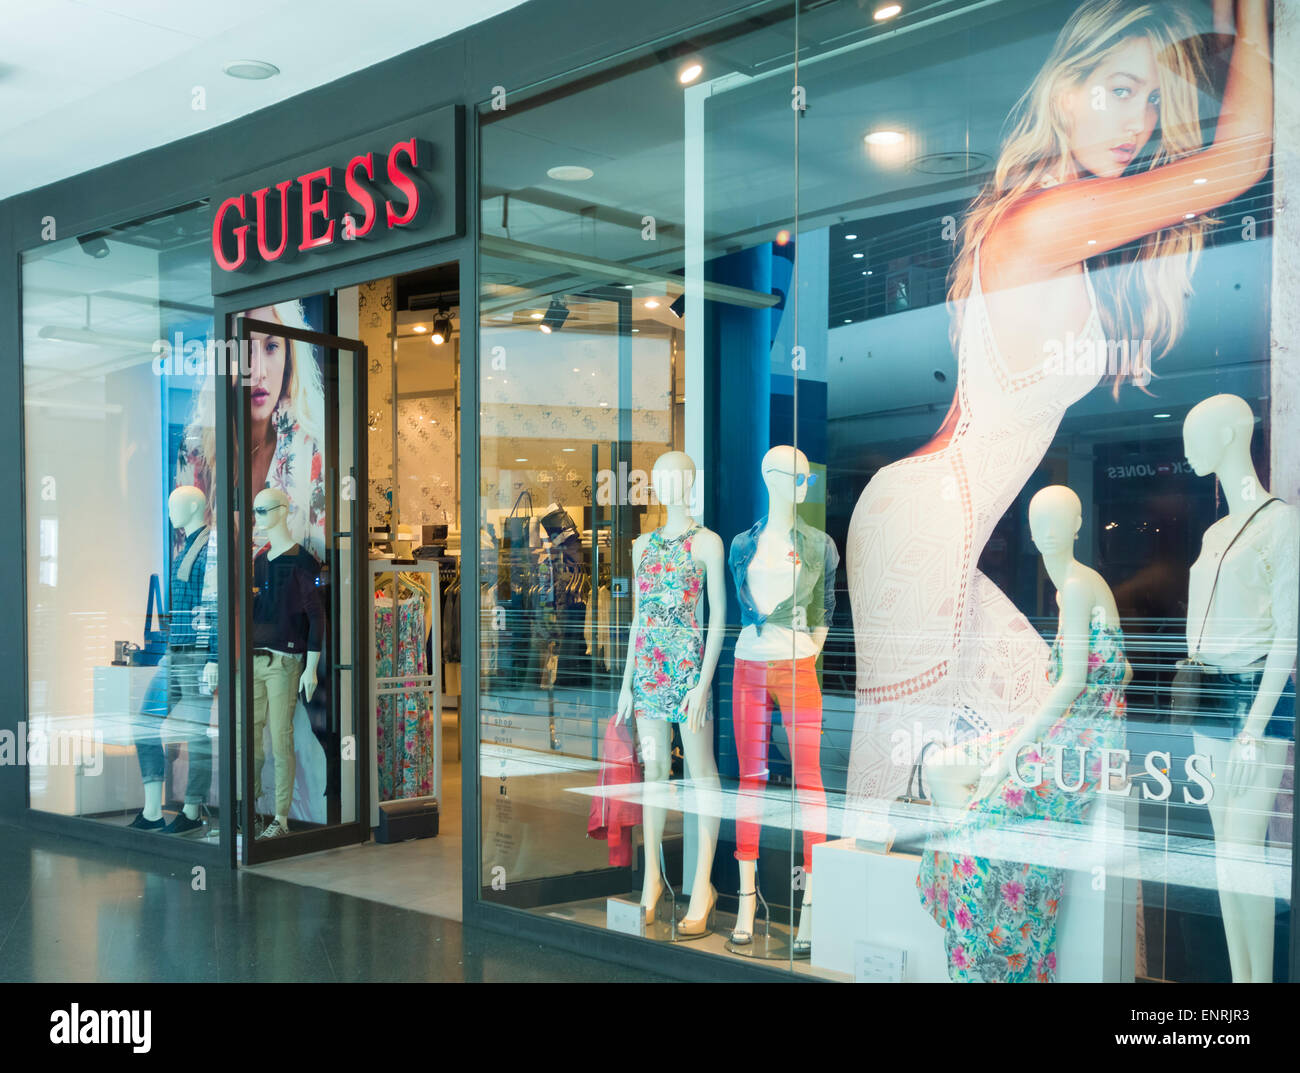 071de3440356c Clothing Store In Spain Photos   Clothing Store In Spain Images - Alamy